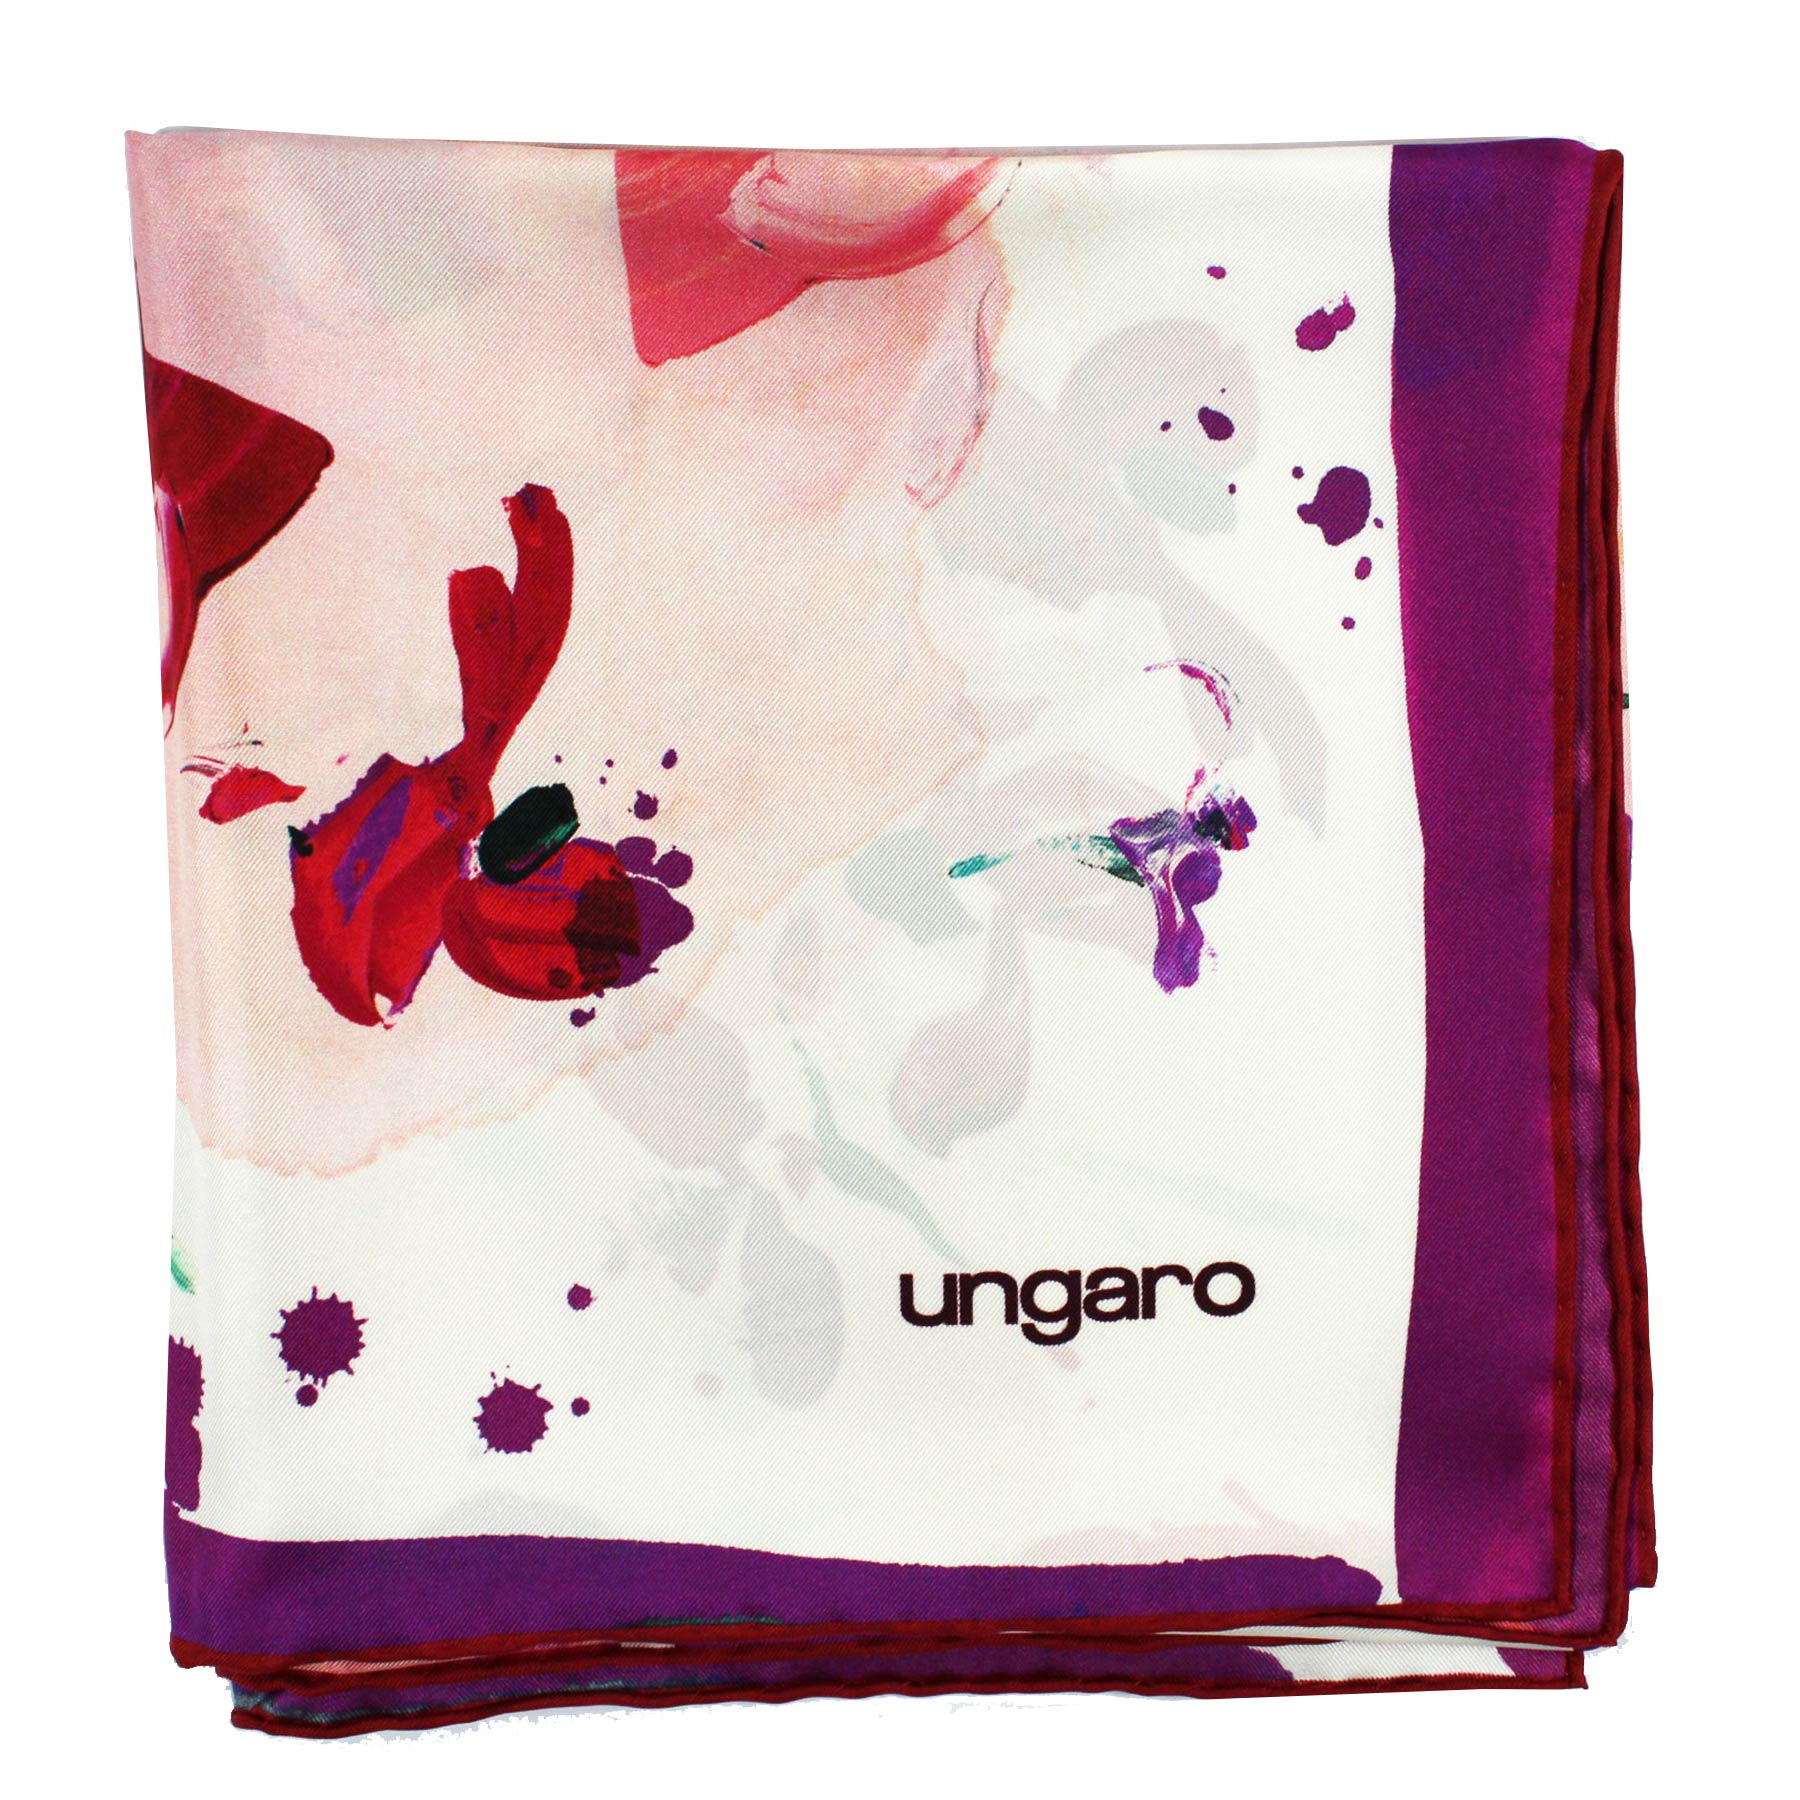 Ungaro Scarf Pink White Fuchsia Floral - Large Twill Silk Square Scarf